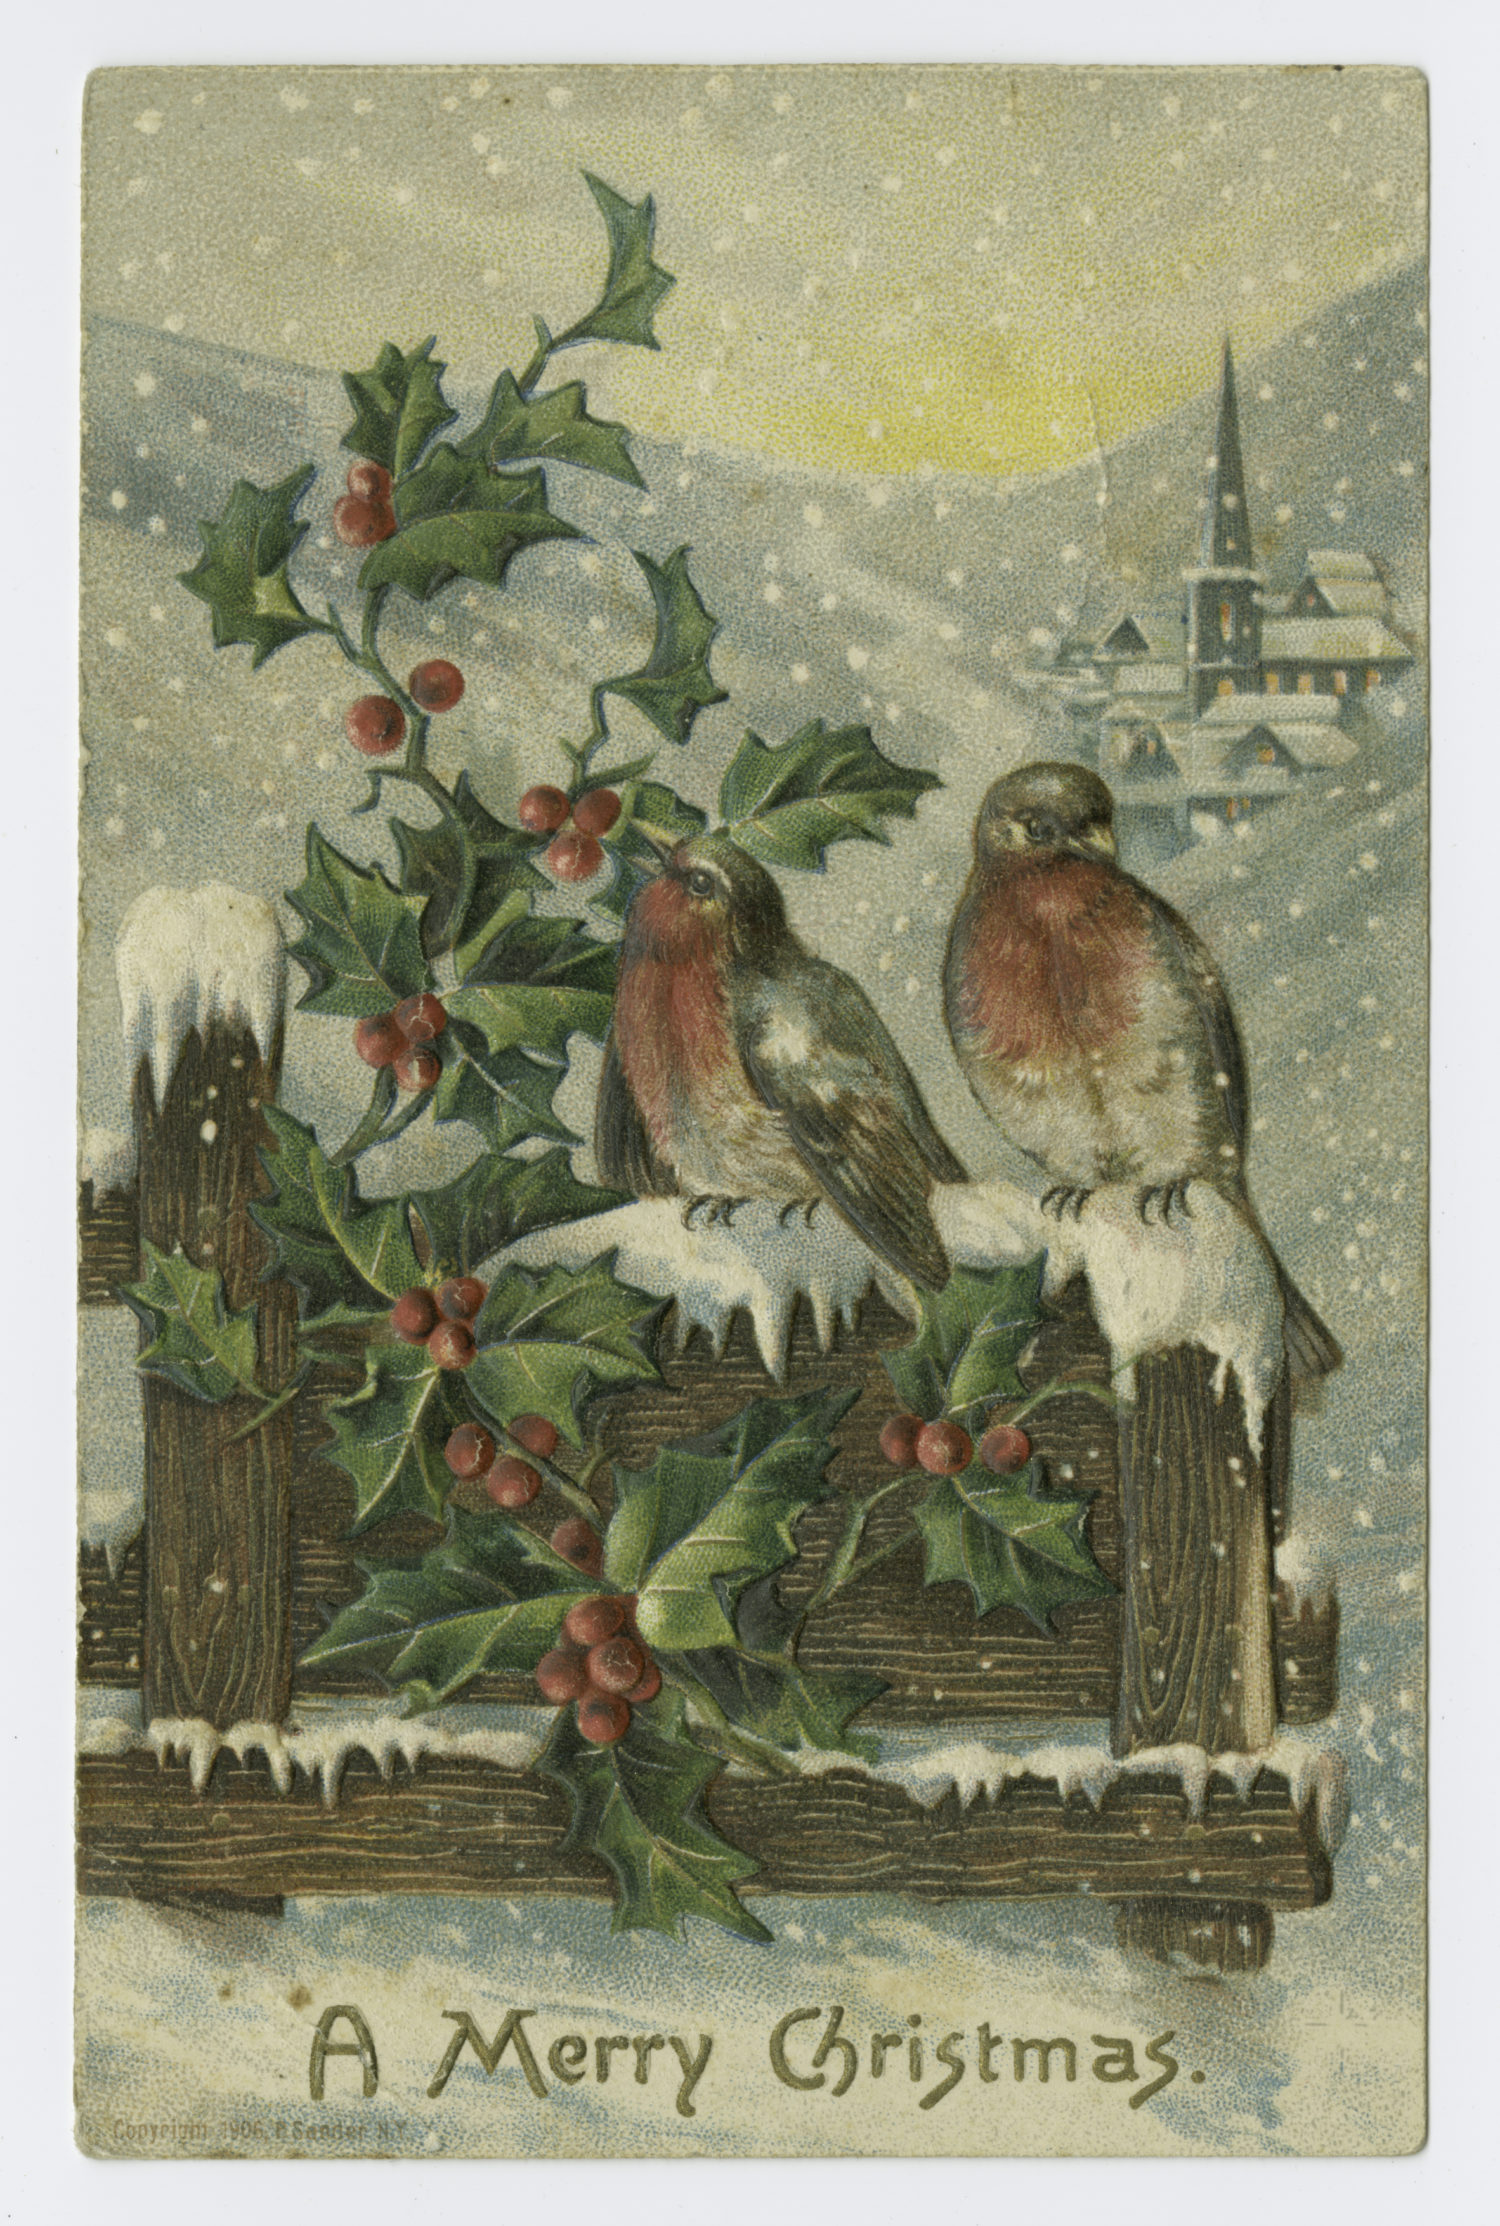 """Art and Picture Collection, The New York Public Library. """"A Merry Christmas."""" The New York Public Library Digital Collections. http://digitalcollections.nypl.org/items/510d47e3-6362-a3d9-e040-e00a18064a99"""